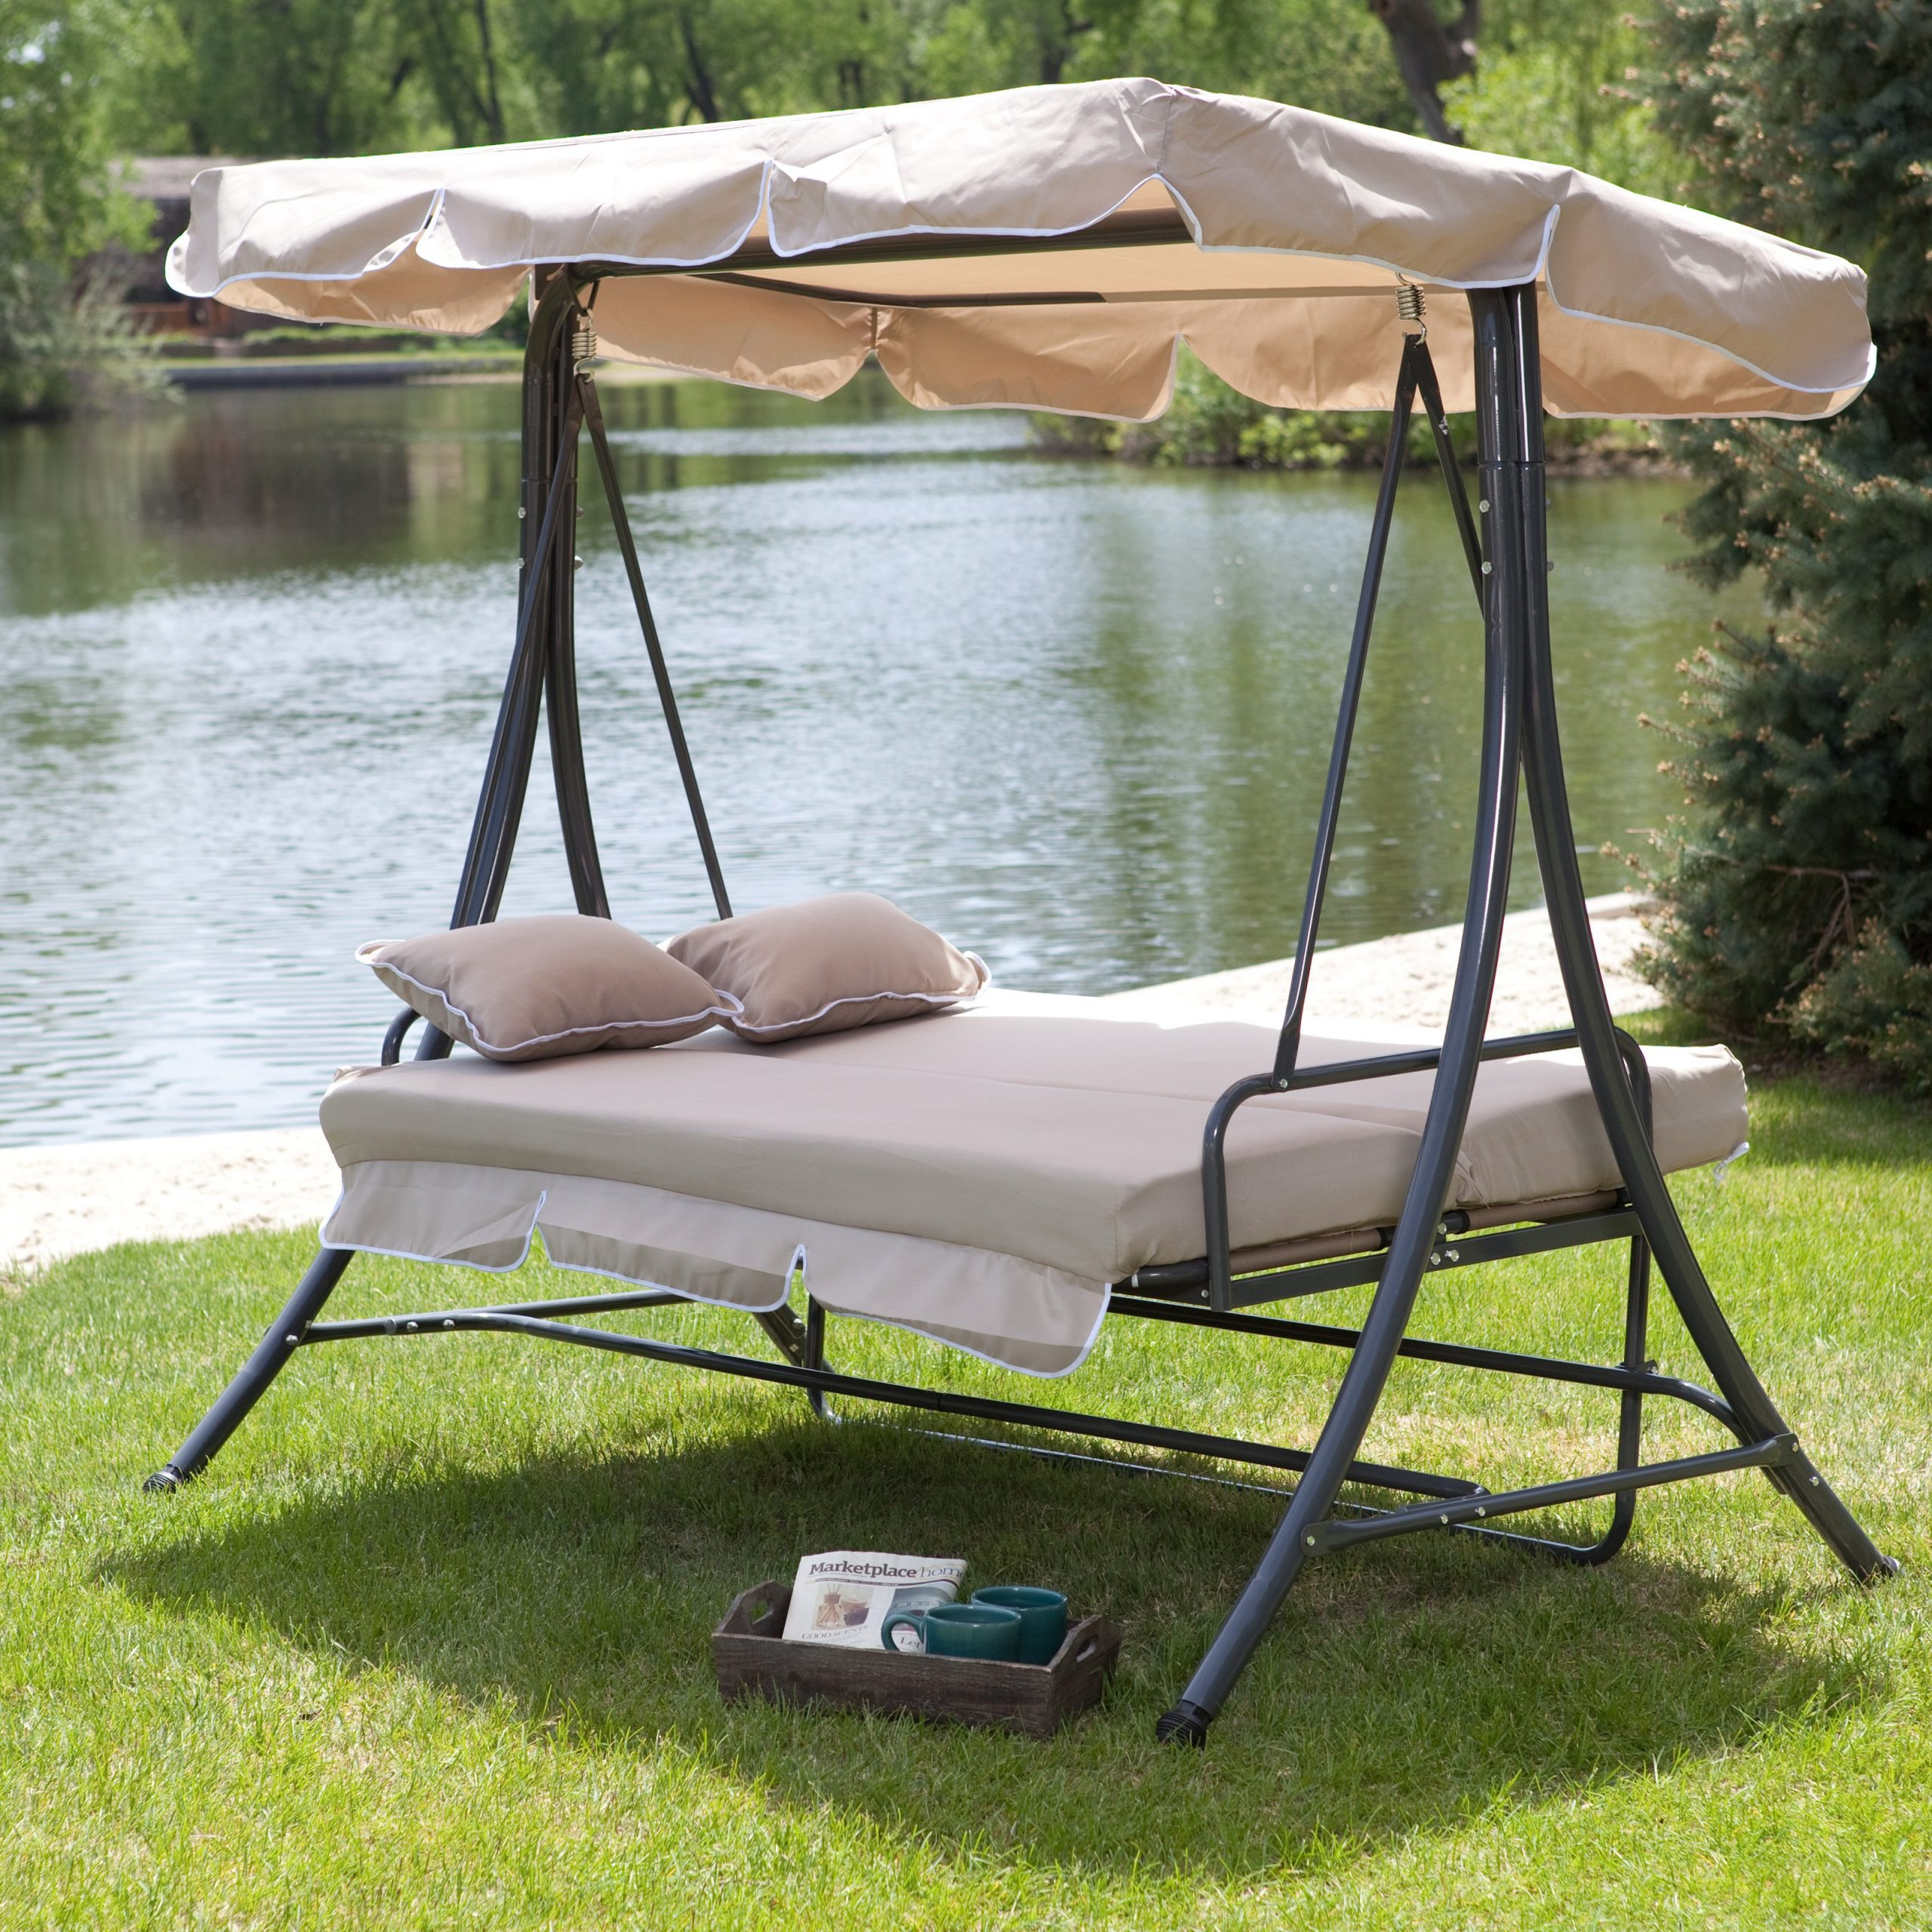 Hammock Patio Backyard Outdoor Swing Hanging Chair With Two Pertaining To Patio Hanging Porch Swings (View 14 of 25)